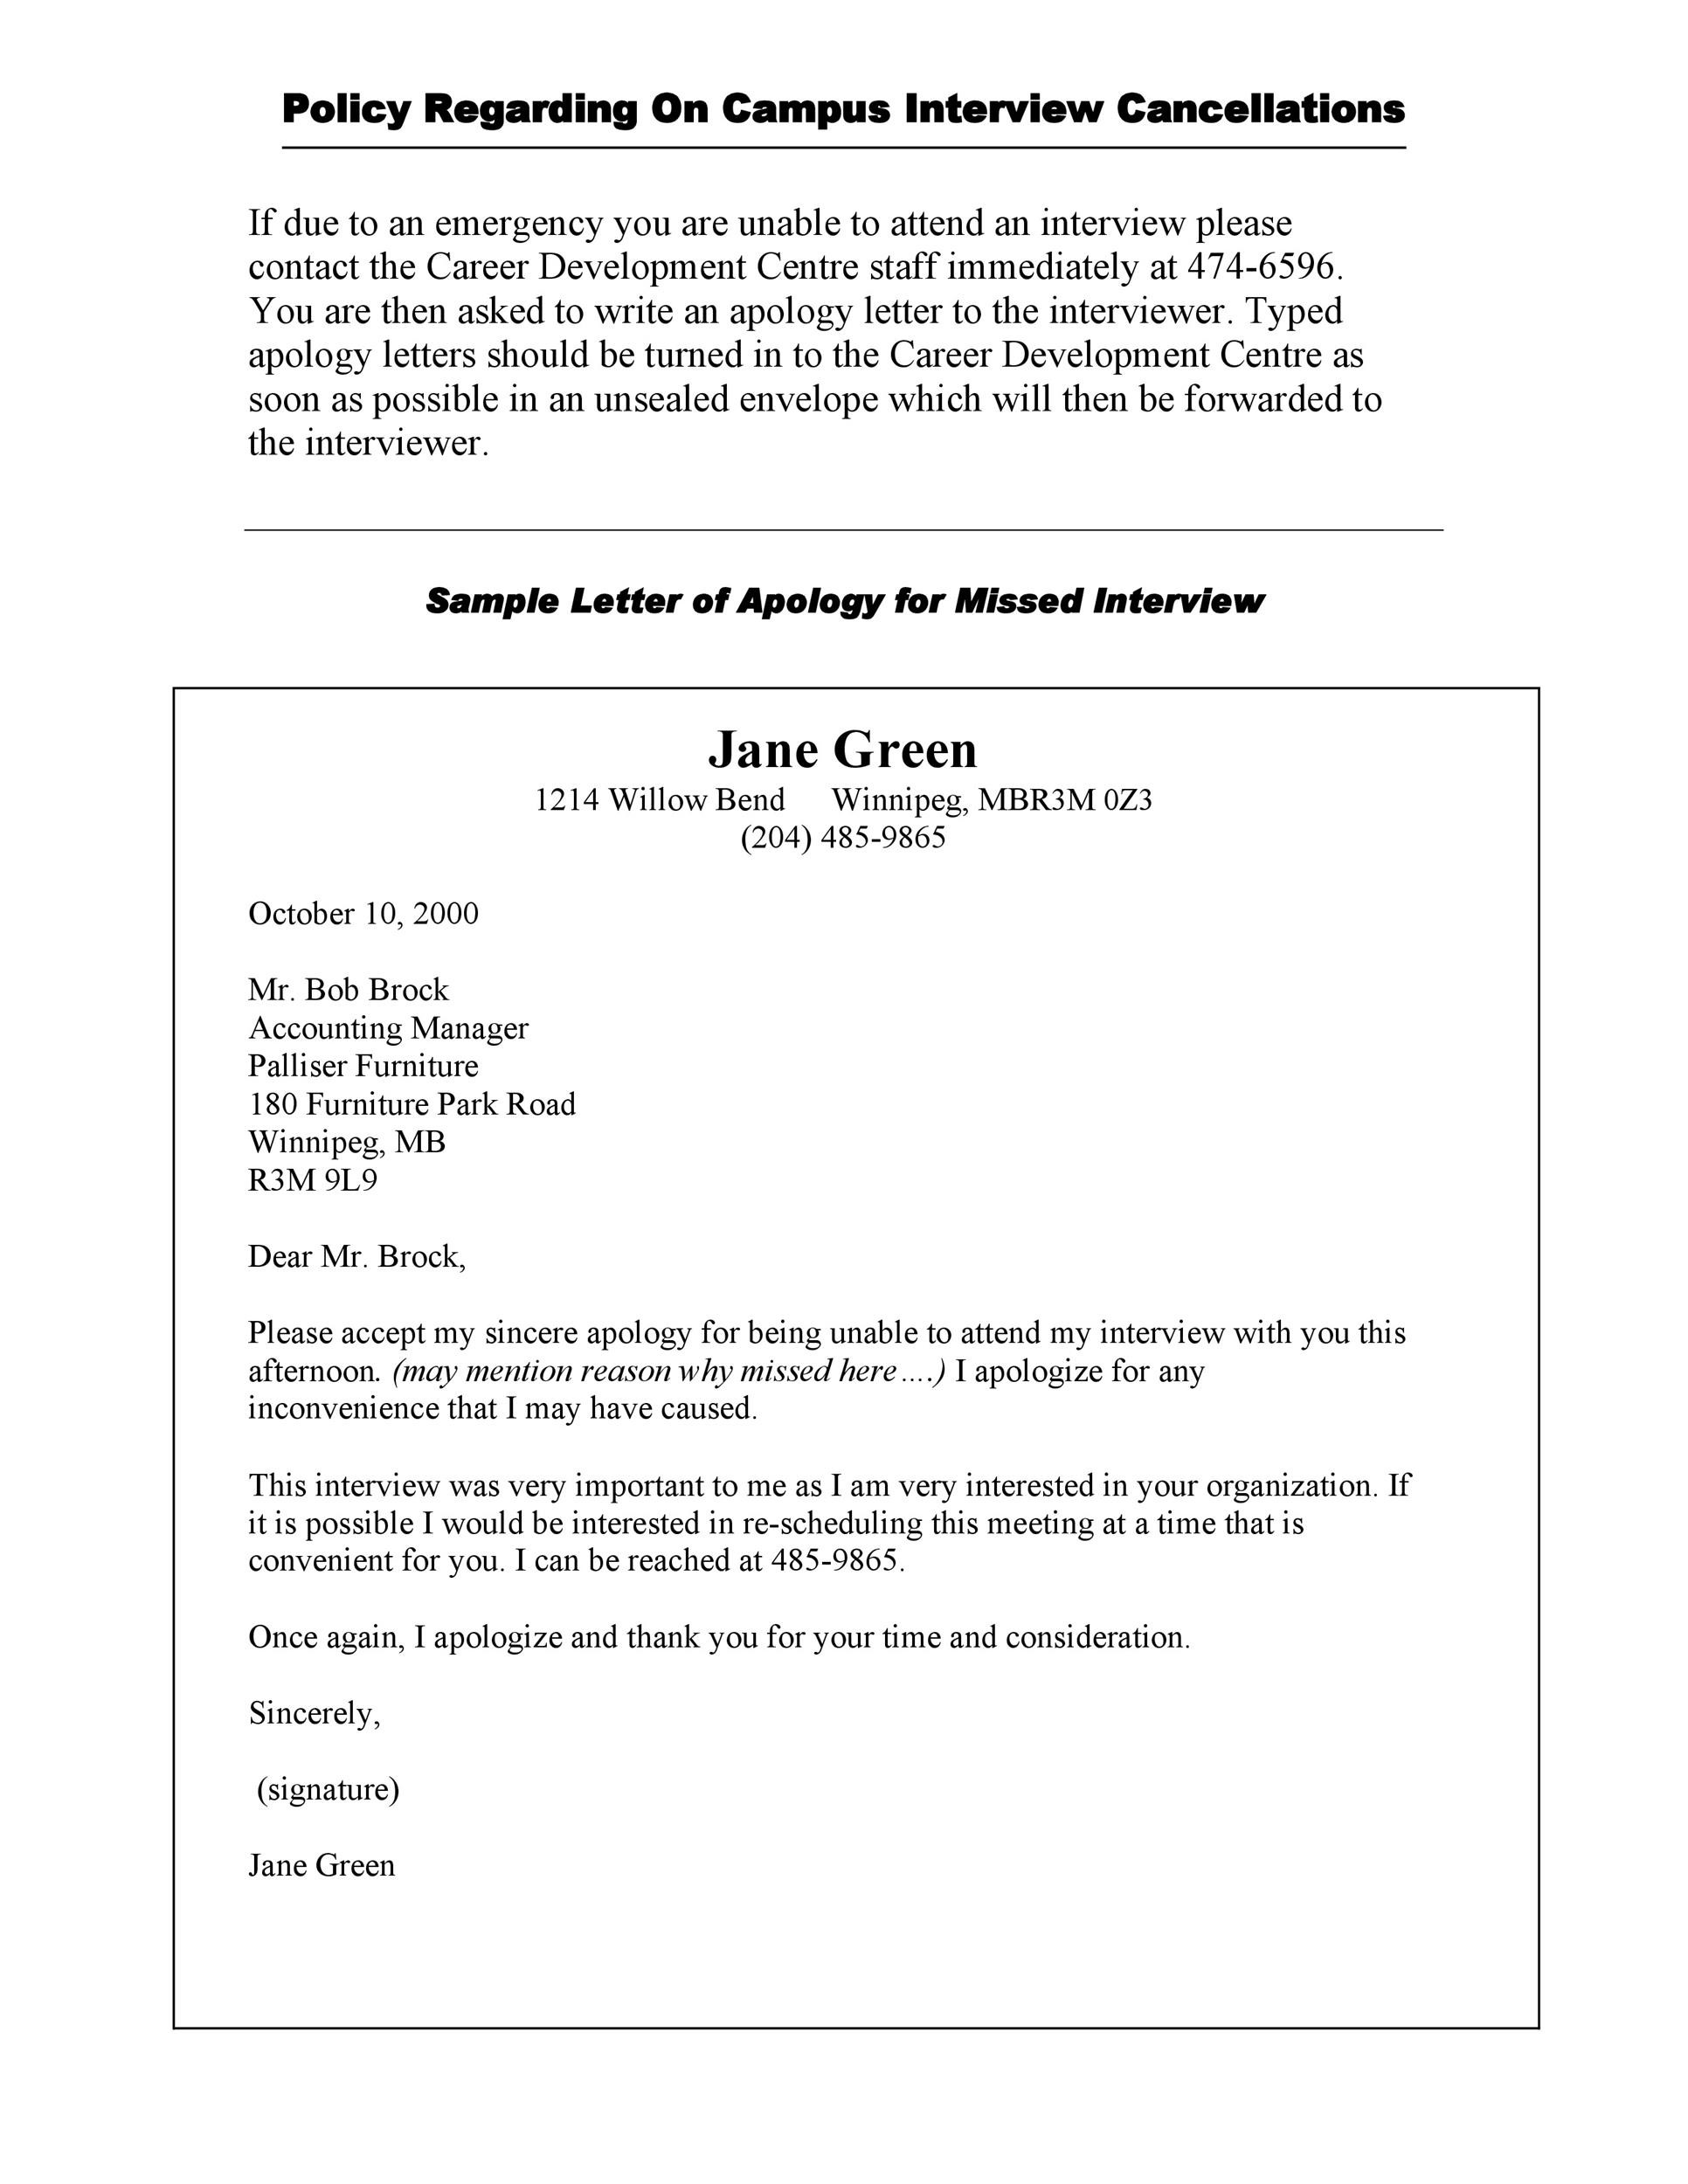 Free apology letter 14